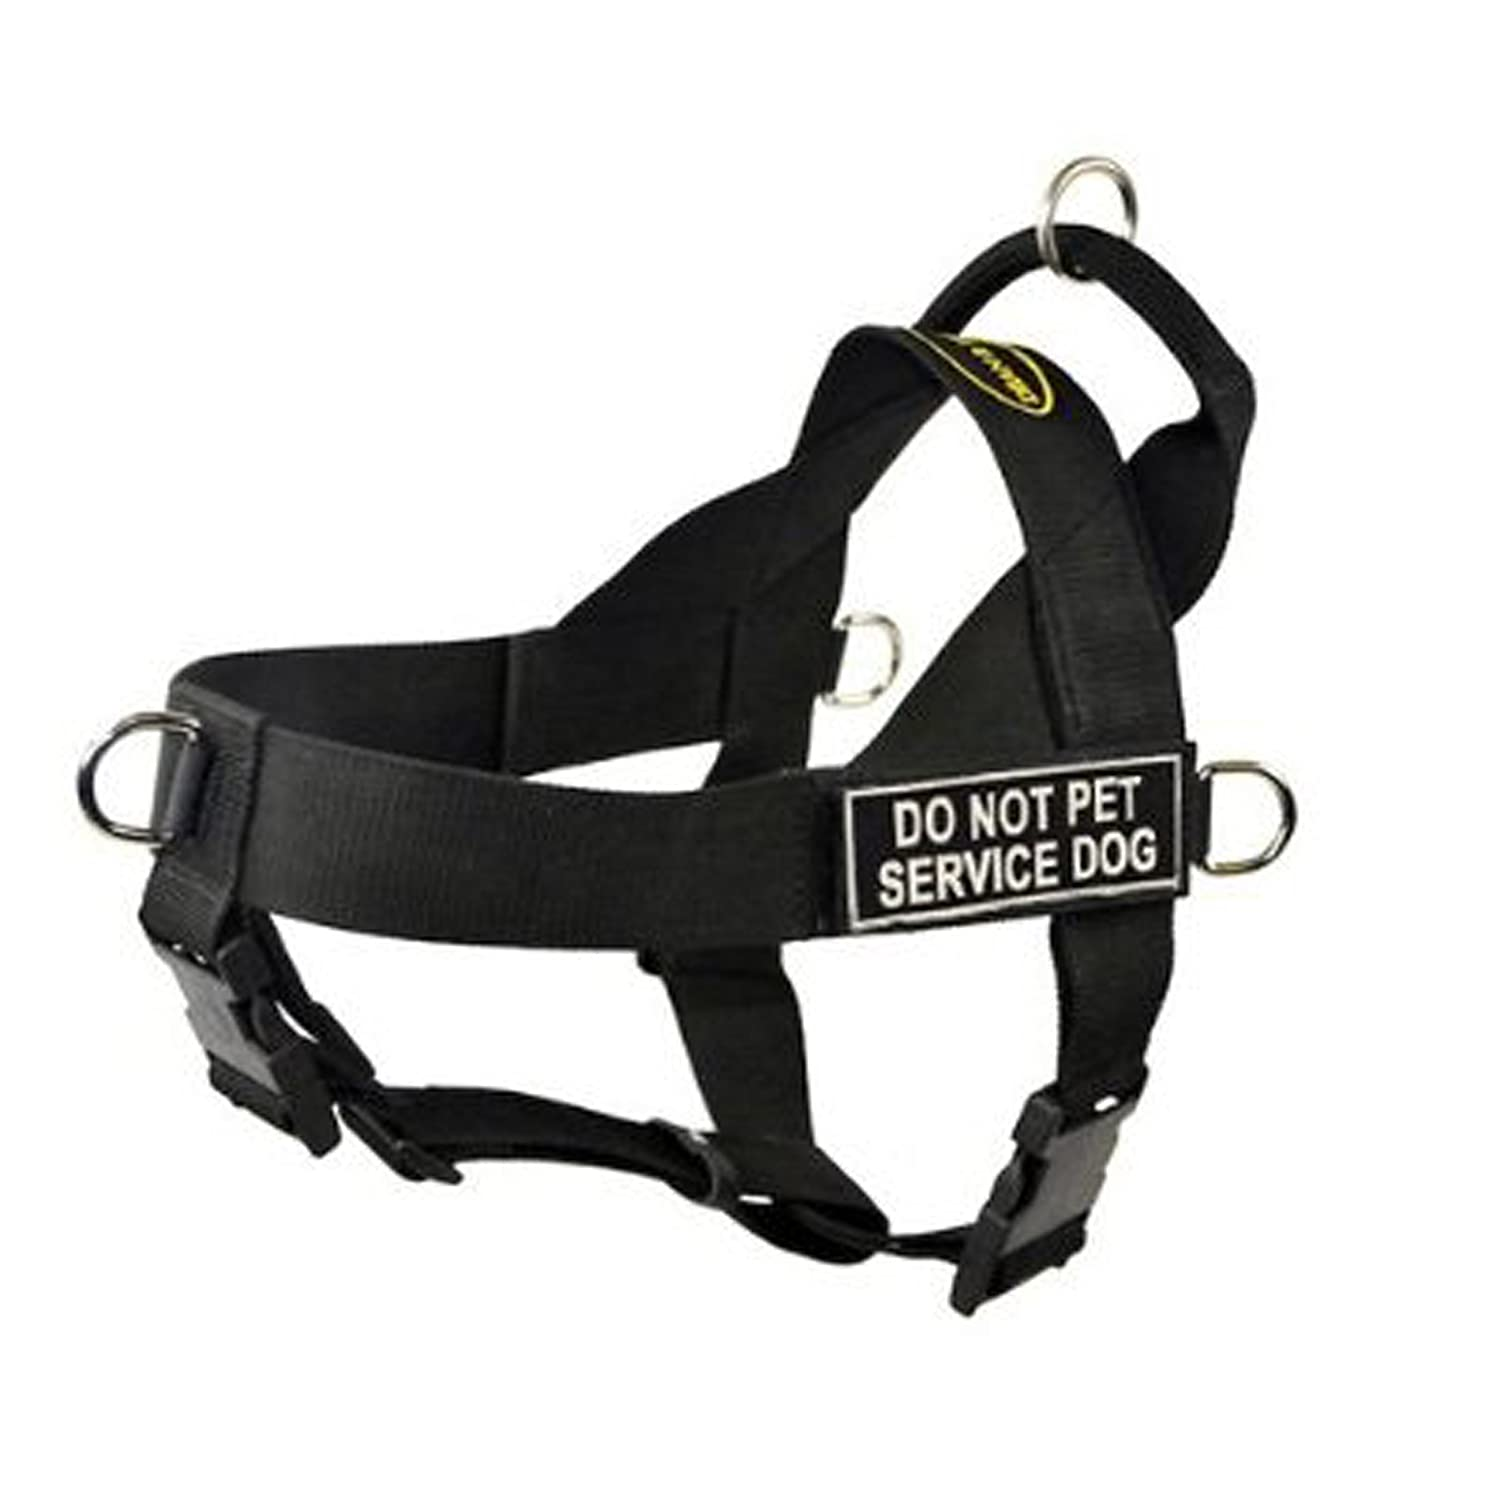 Dean & Tyler Universal No Pull Dog Harness, Do Not Pet Service Dog, Black, Large, Fits Girth Size  79cm to 107cm